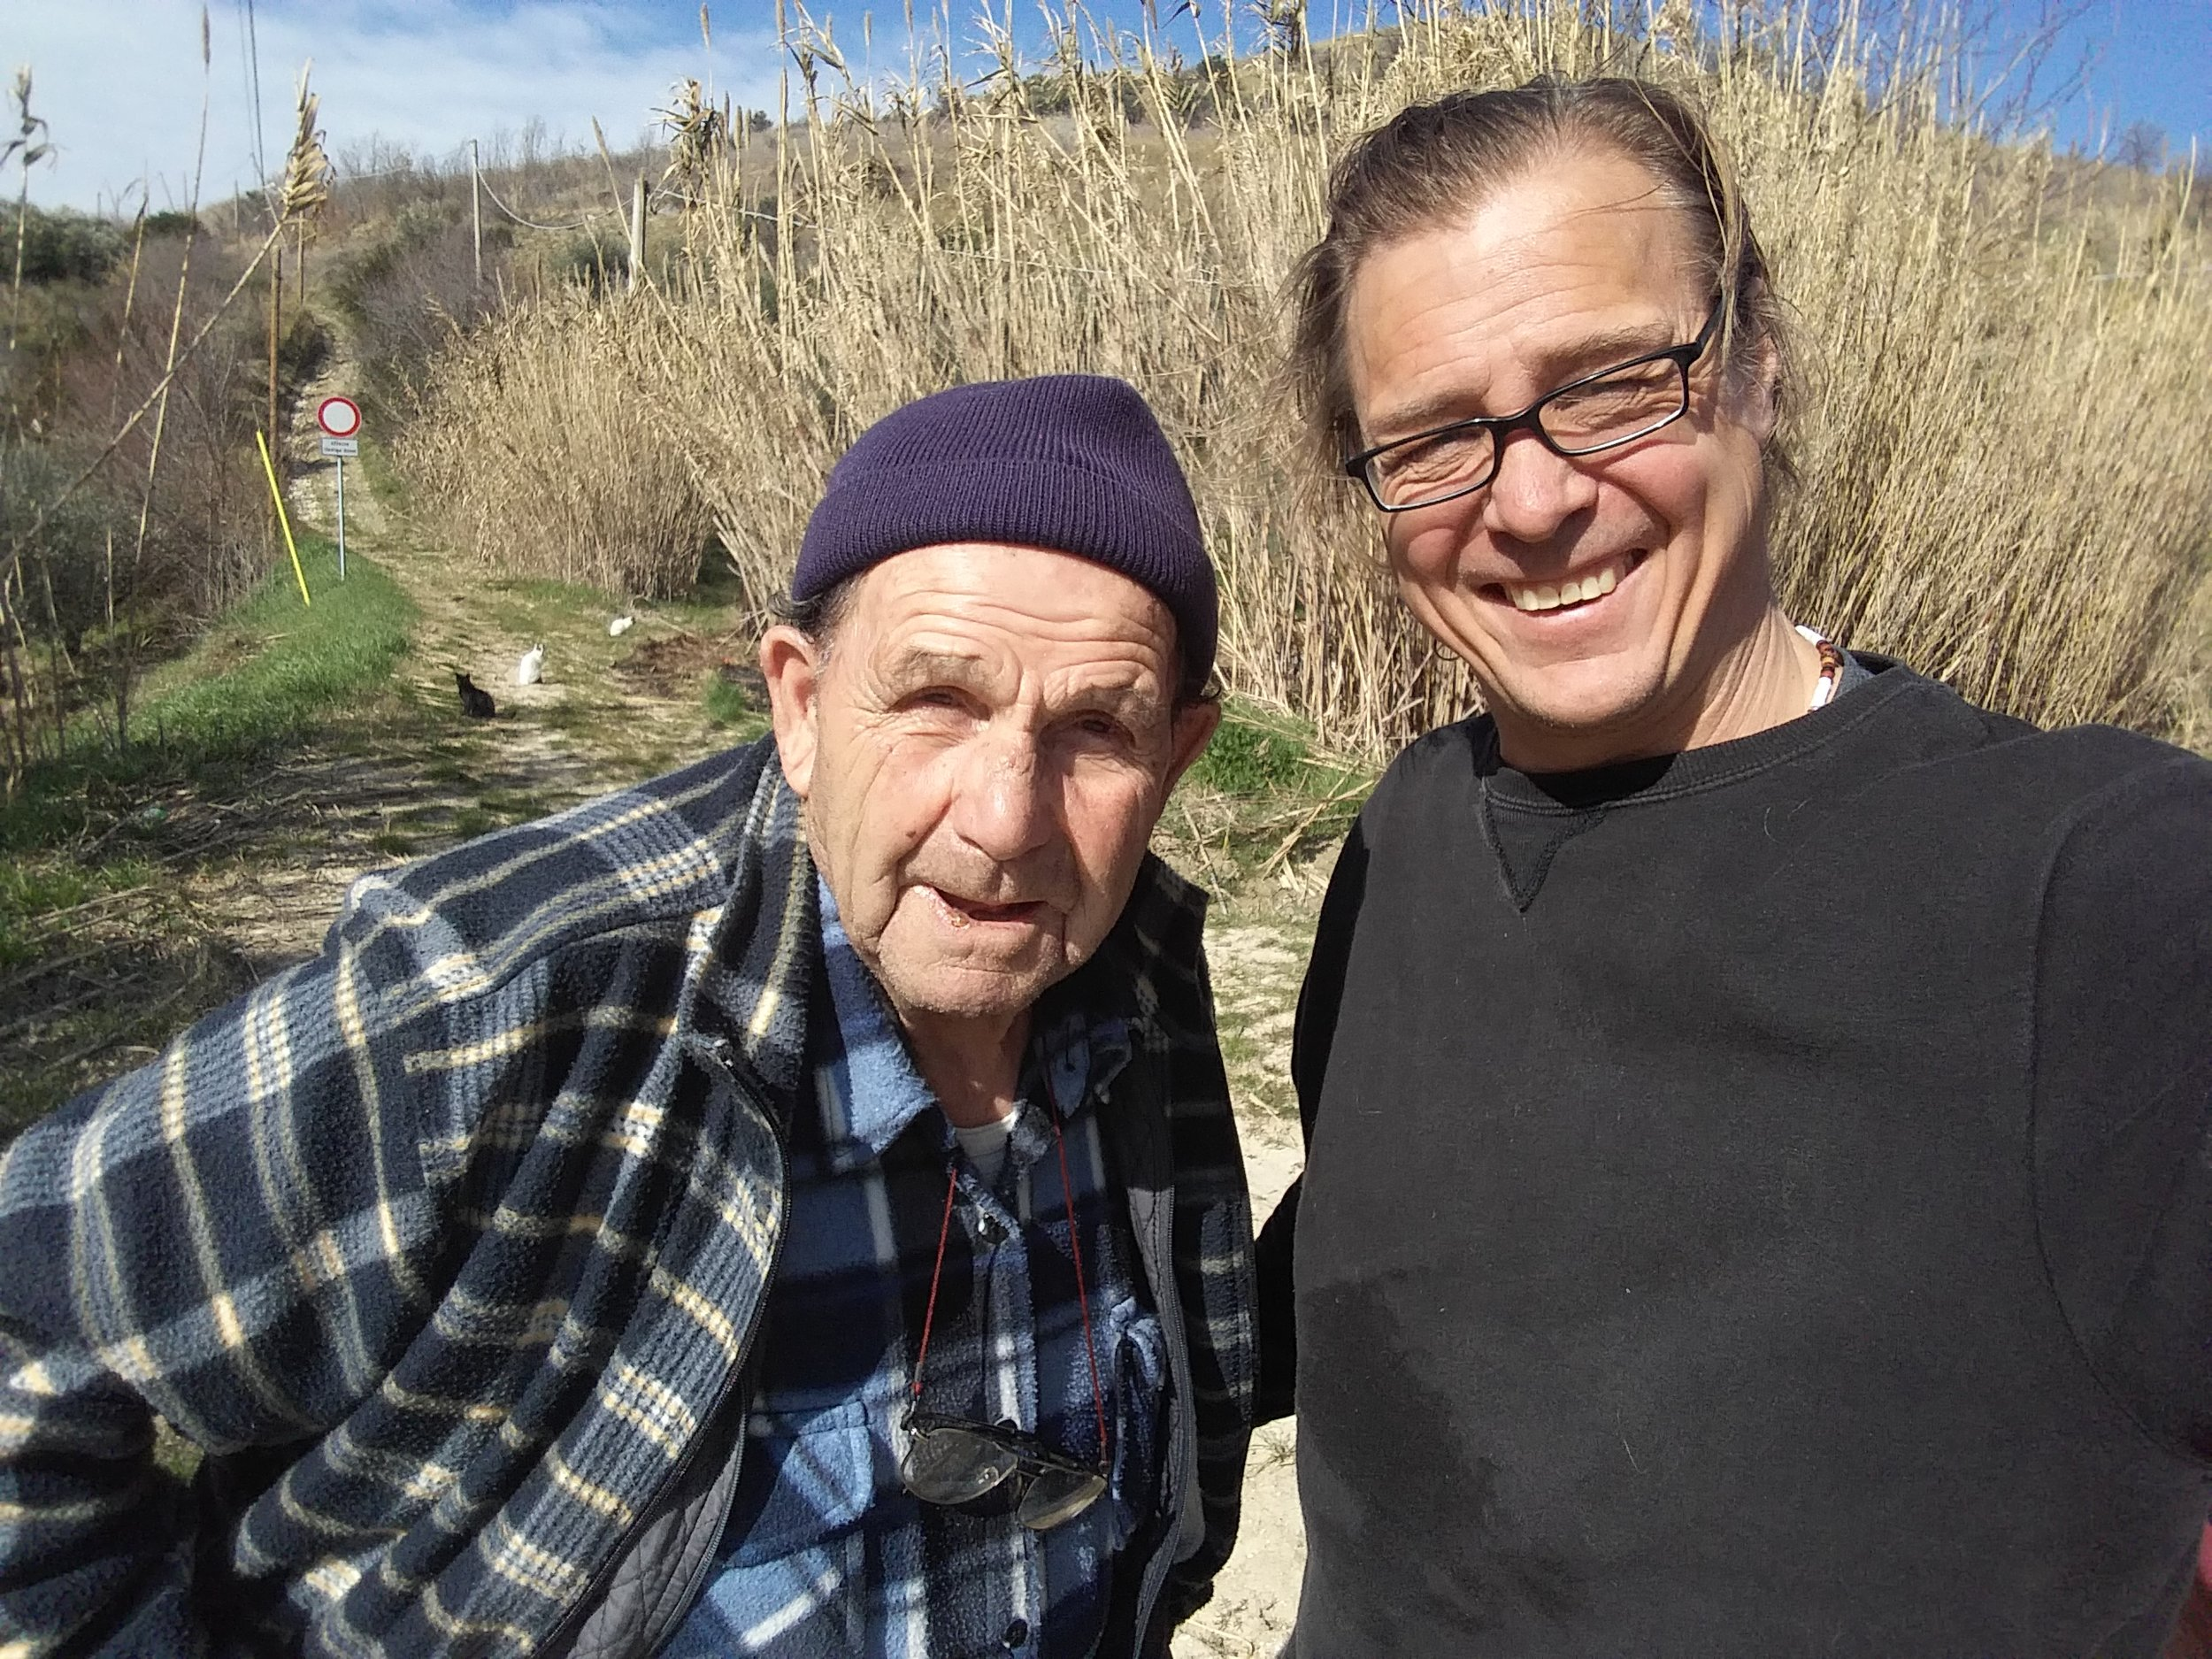 Antonio and I a couple of weeks ago near his olive trees.